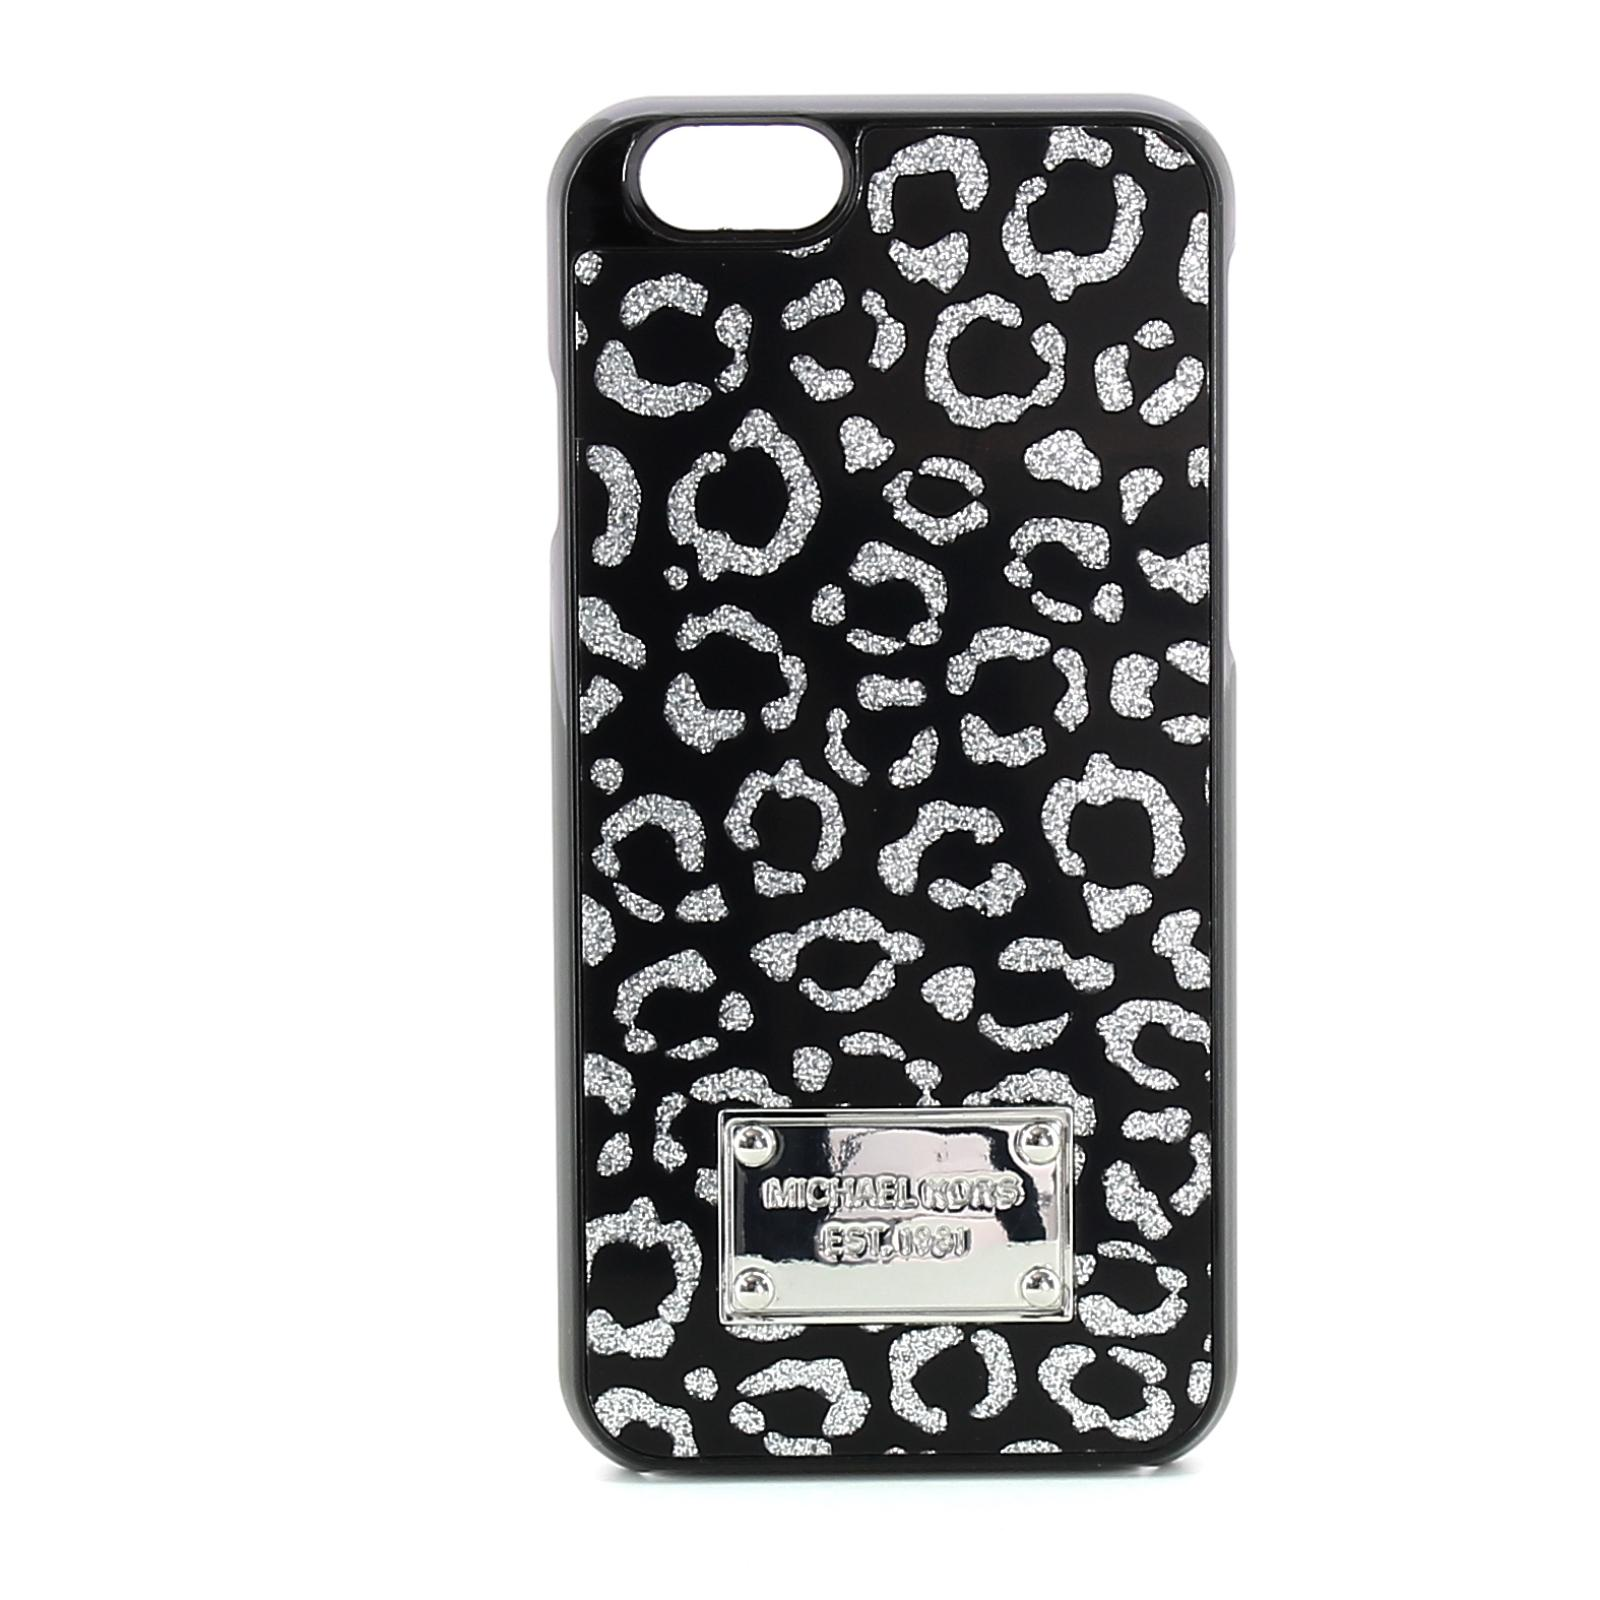 IPHONE 6 COVER 32H5SELL3G